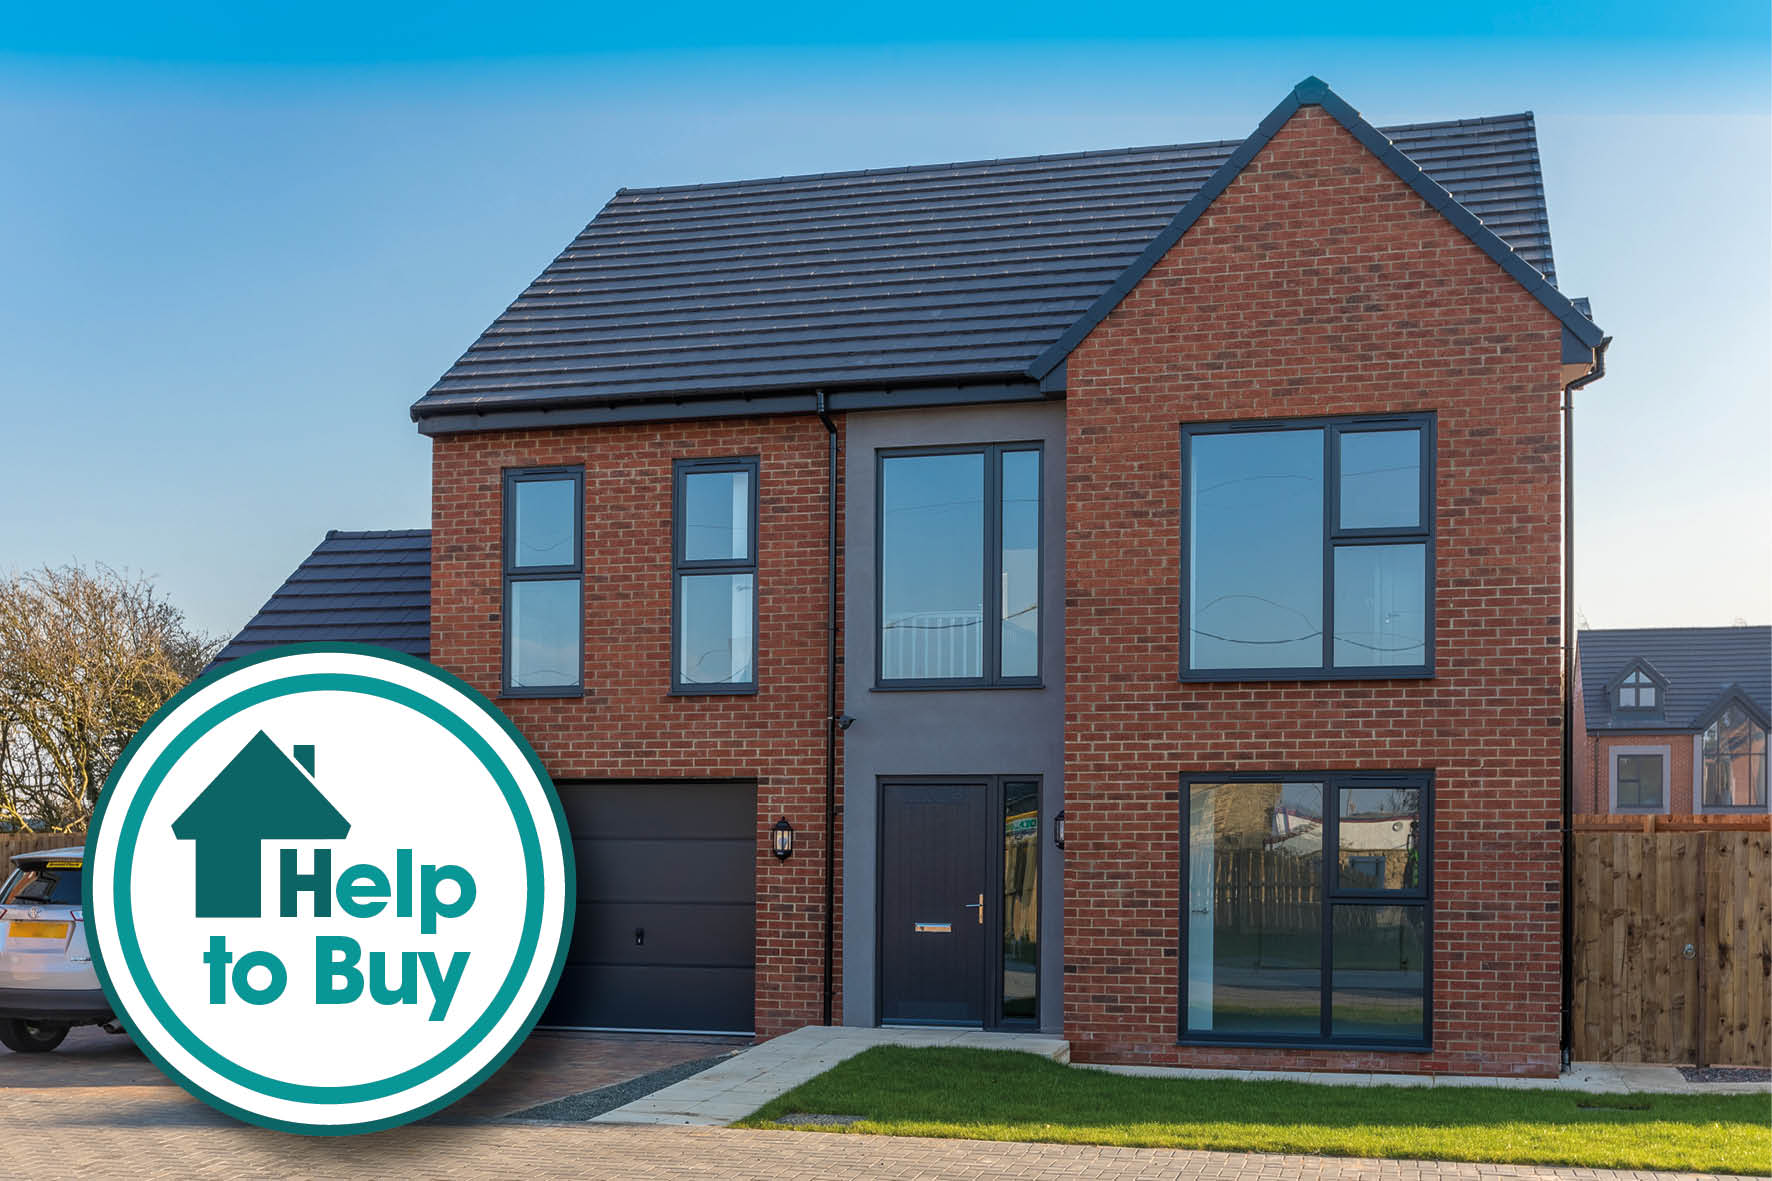 Help to buy available - Government backed schemes where you could buy a new Ascent home with just a 5% deposit:Purchase price of your new home 100% £309,950Deposit 5% £15,497Mortgage 75% £242,463Equity Loan from Government 20% £61,990*Subject to eligibility. Terms and conditions apply. Specific plots only*